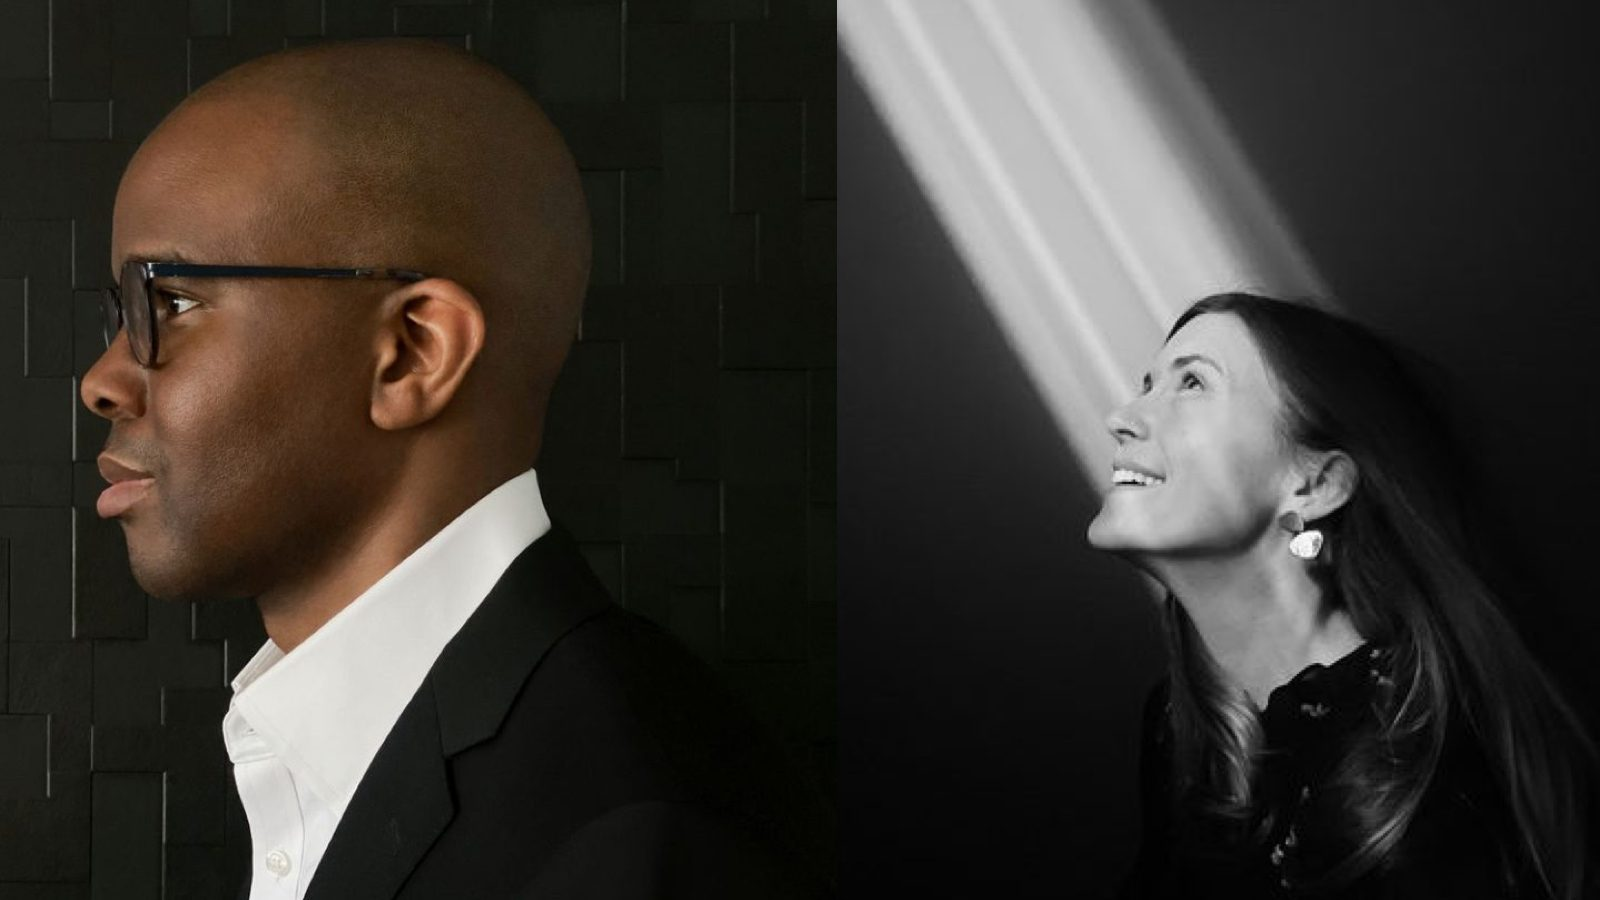 Left: Tope Folarin against black background, Right: Sarah Stewart Johnson in black and white with light a beam shining on her face